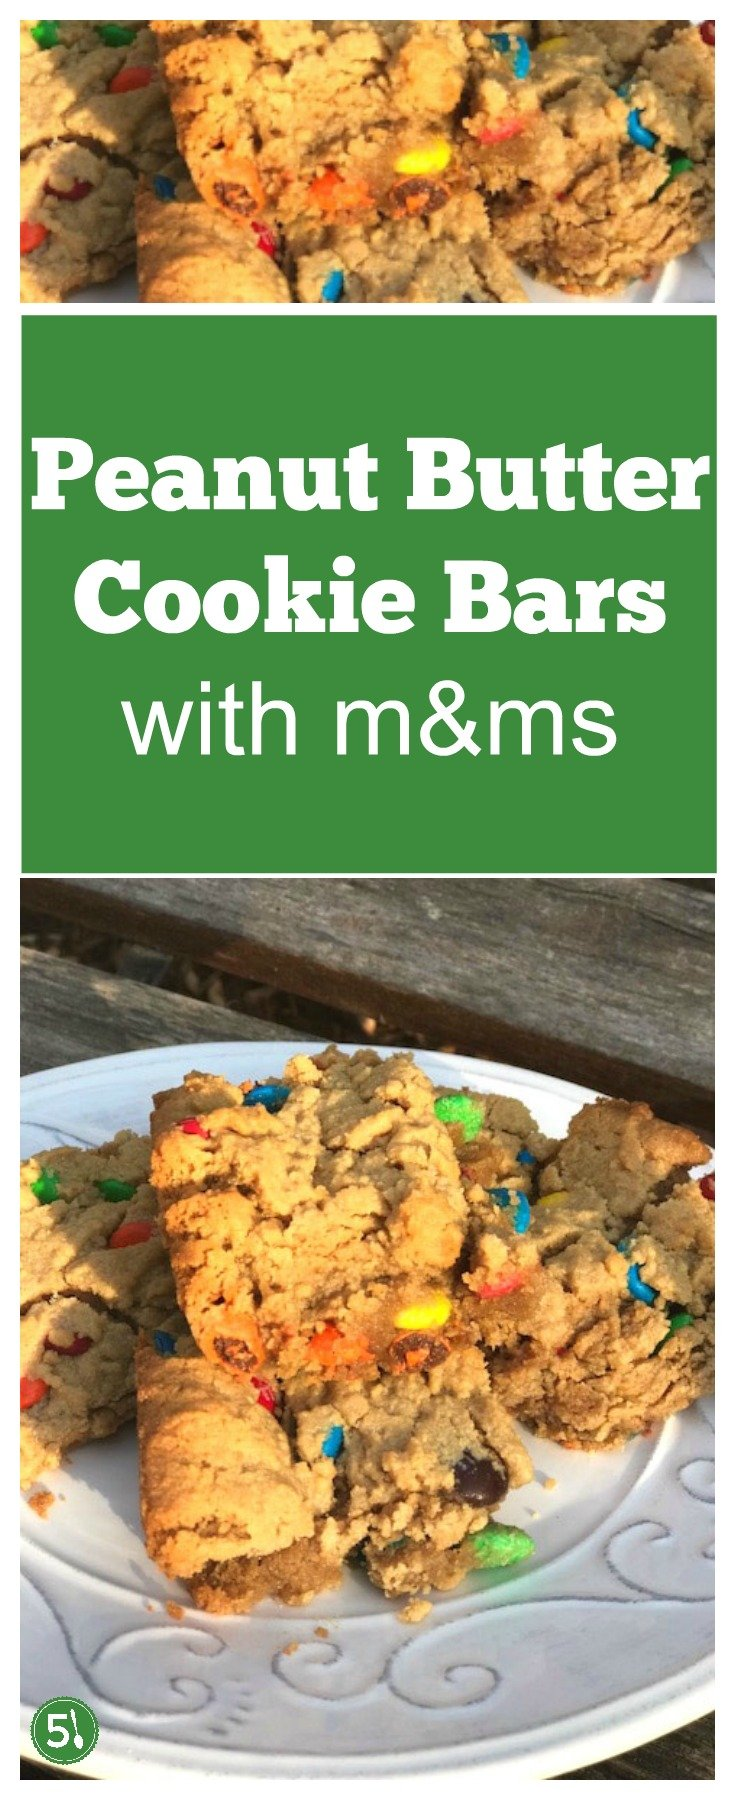 These easy peanut butter cookie bars can be whipped up in one bowl in no time flat.  I love baking sweet treats that include m&m chocolates.  Desserts with m&ms are always welcome in my house.